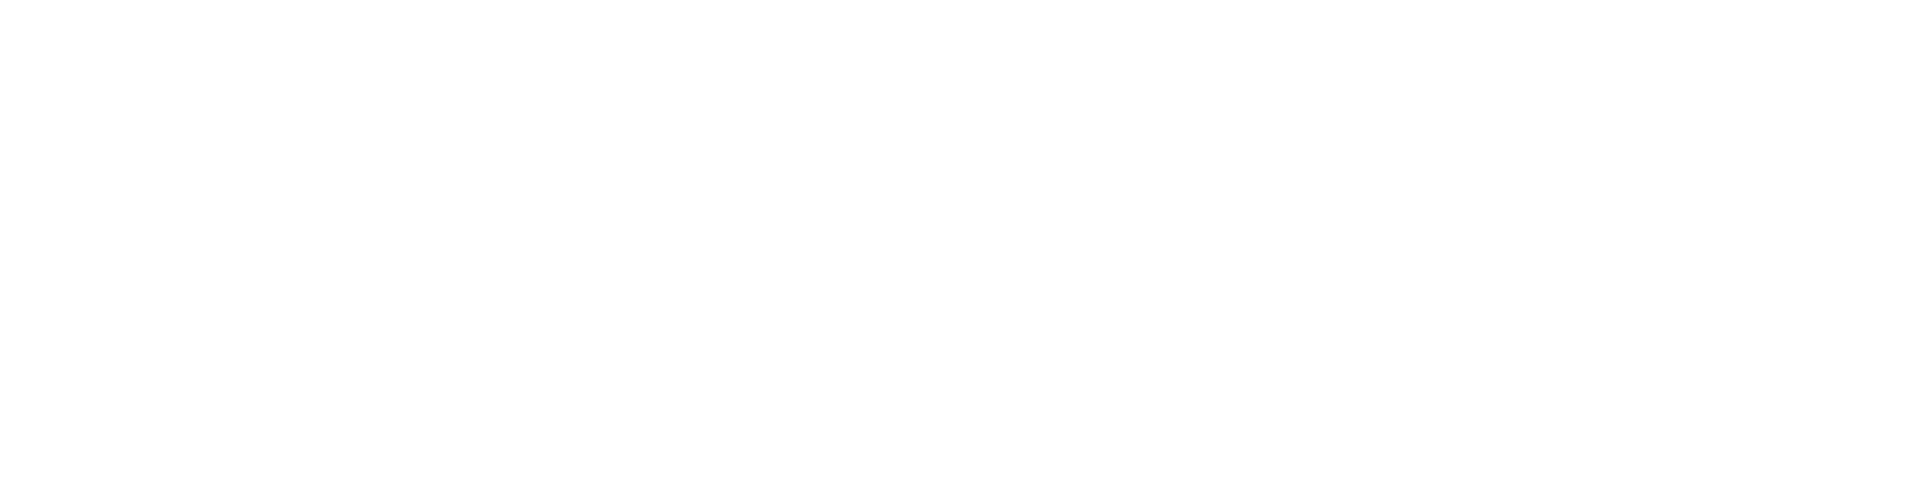 Text saying 63% of people report that digital signage catches their attention